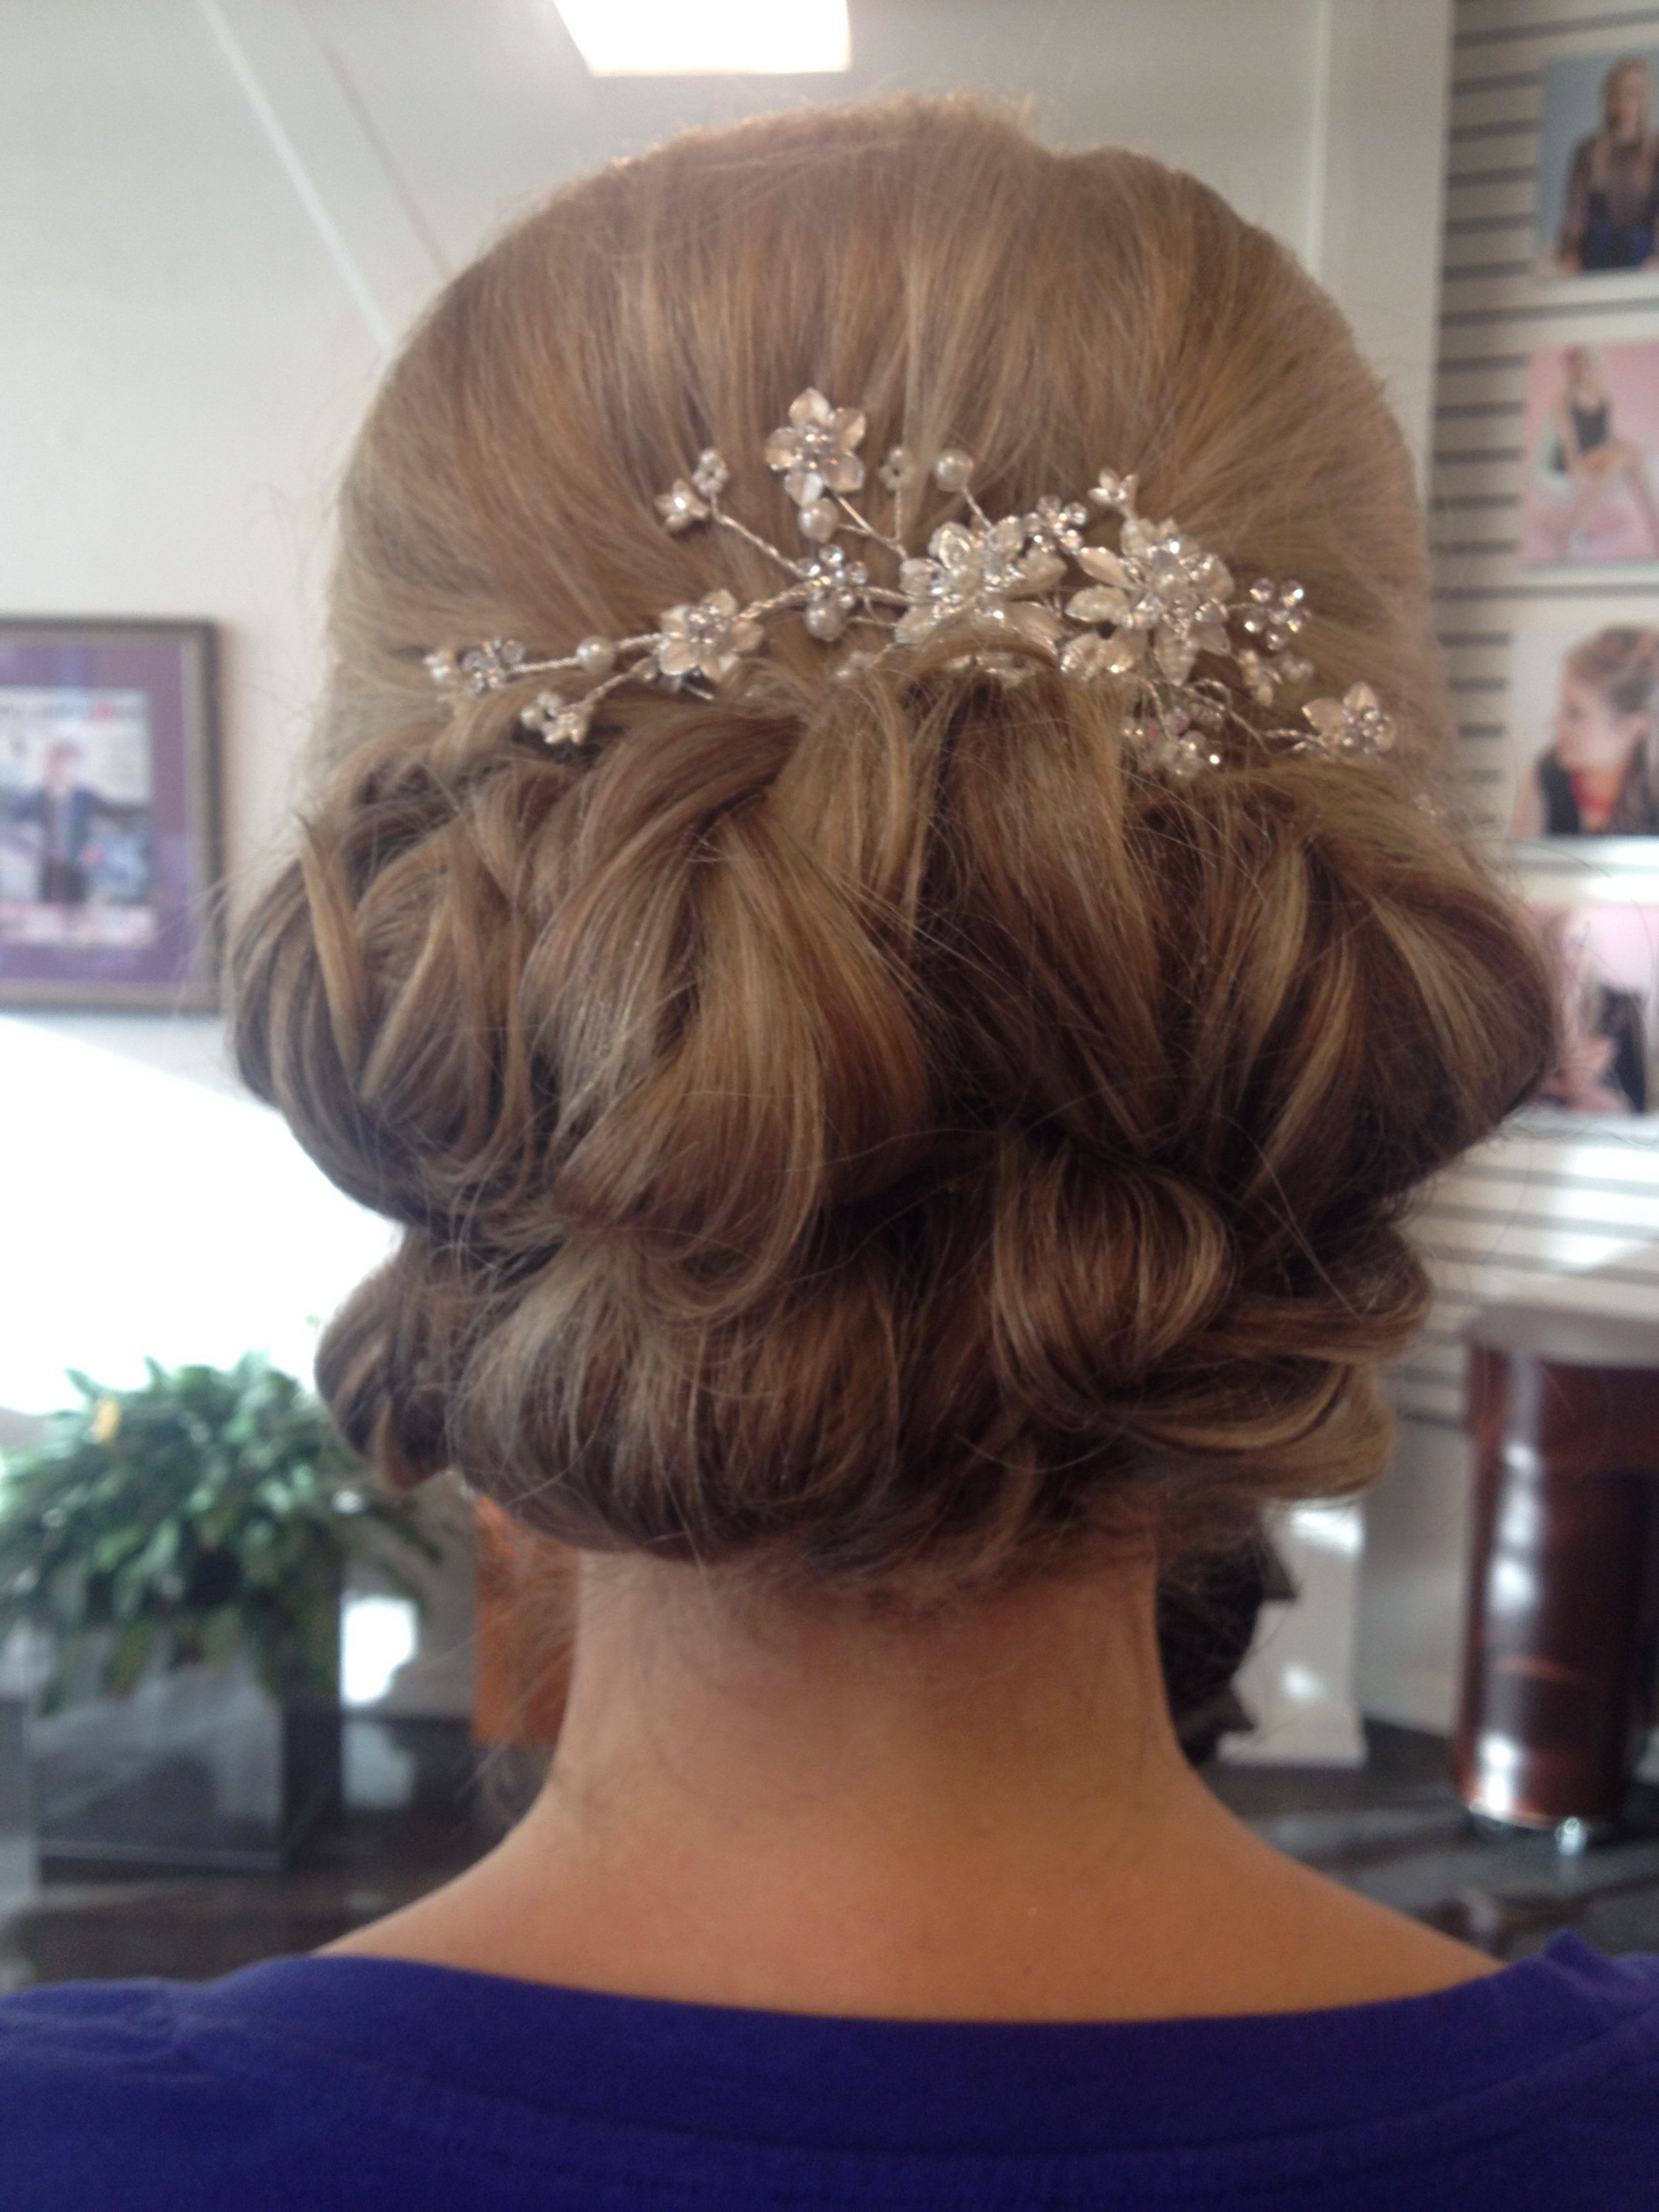 Most Recent High Volume Donut Bun Updo Hairstyles Throughout Low Curled Updo With High Volume And Decorative Hair Piece (View 11 of 20)